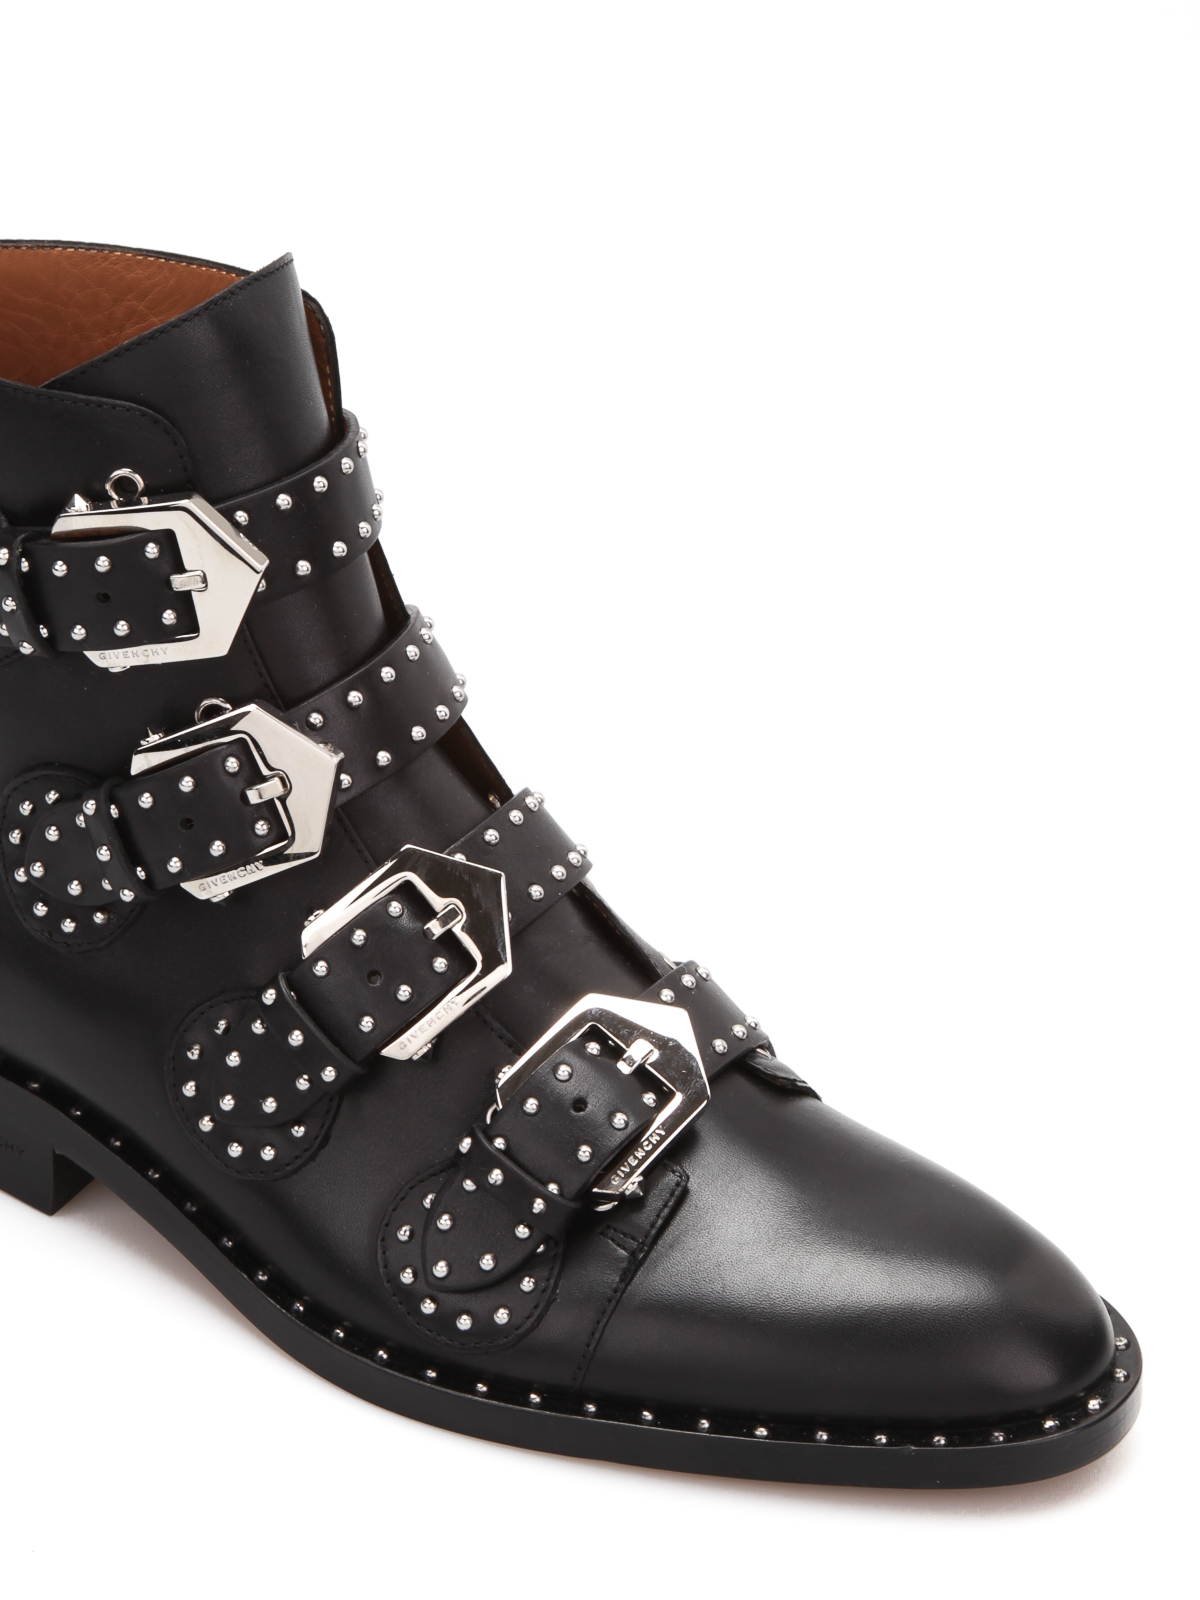 Givenchy Studded Ankle Boots Ankle Boots